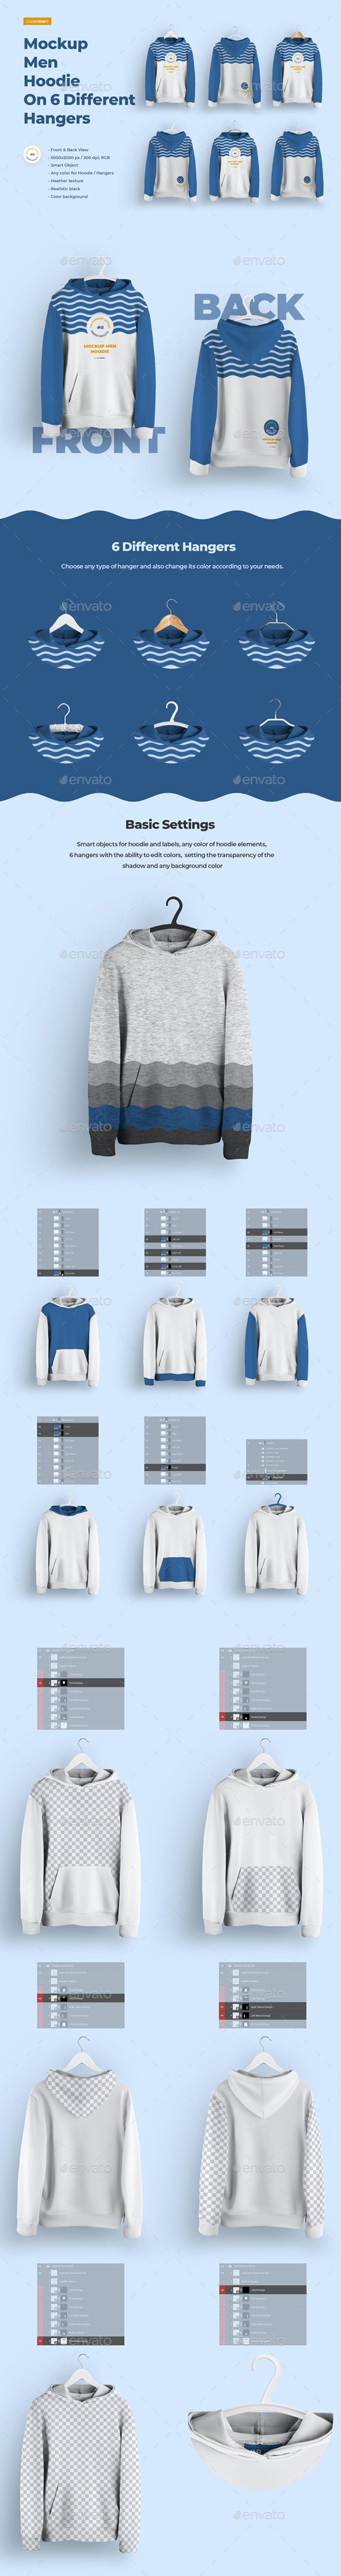 Front and Back Men Hoodie Mockup On 6 Different Hangers - Apparel Product Mock-Ups